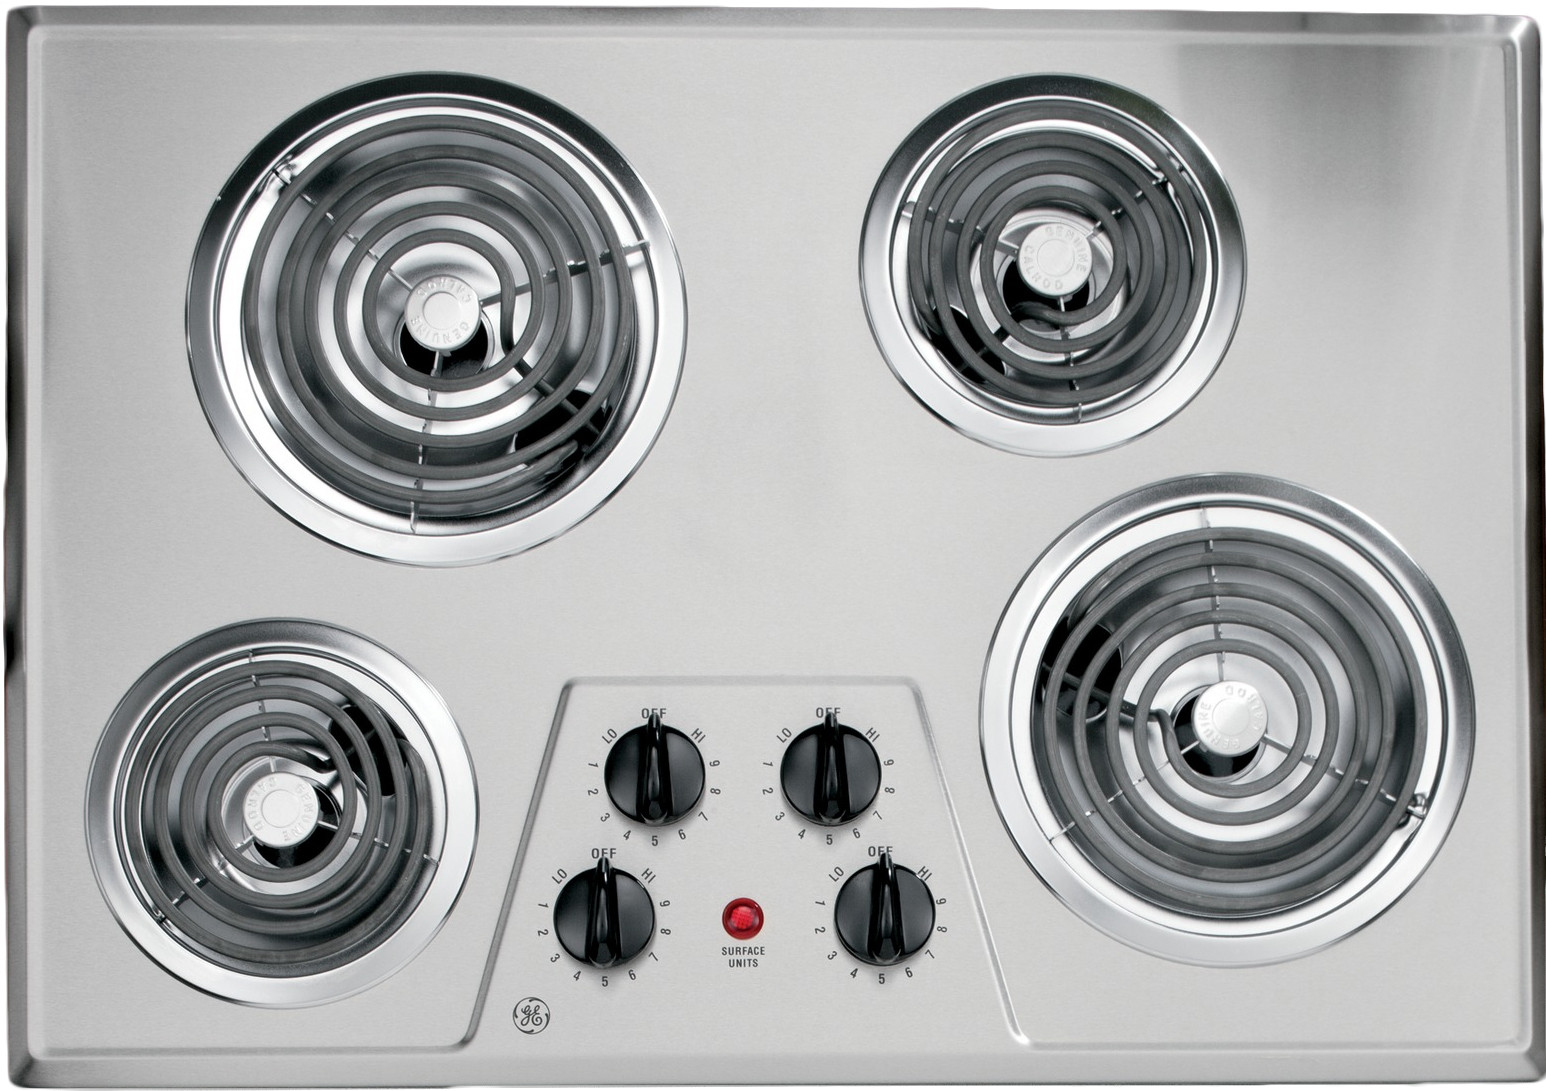 GE JP328SKSS 30 Inch Electric Cooktop with 4 Coil Elements, Removable Drip  Bowls, Upfront Controls, GE Fits! Guarantee and ADA Compliant: Stainless  Steel